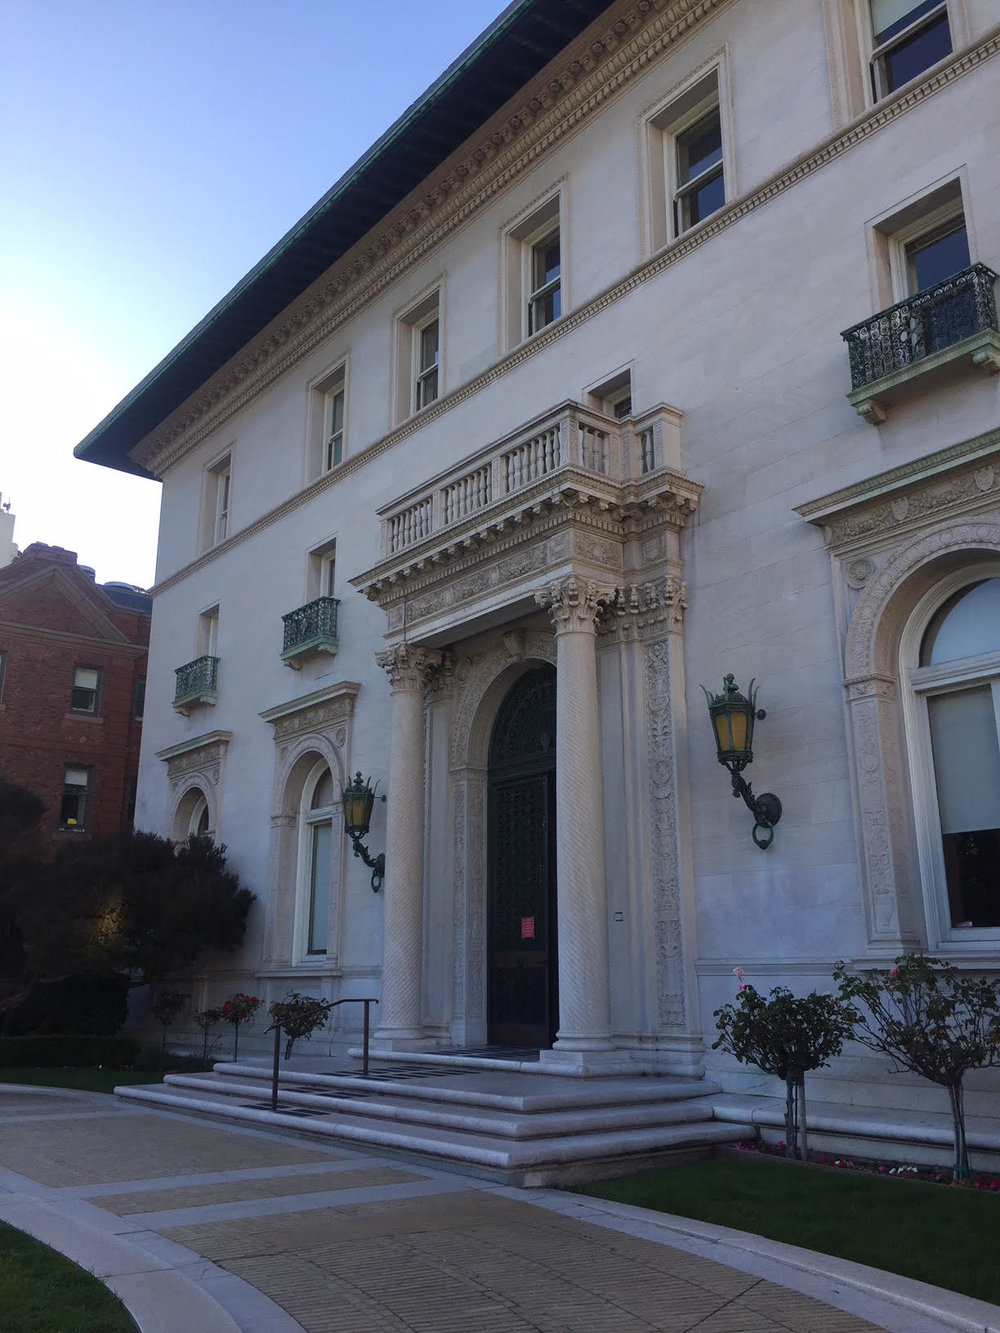 James Flood mansion, location of the ICAA's lecture series.